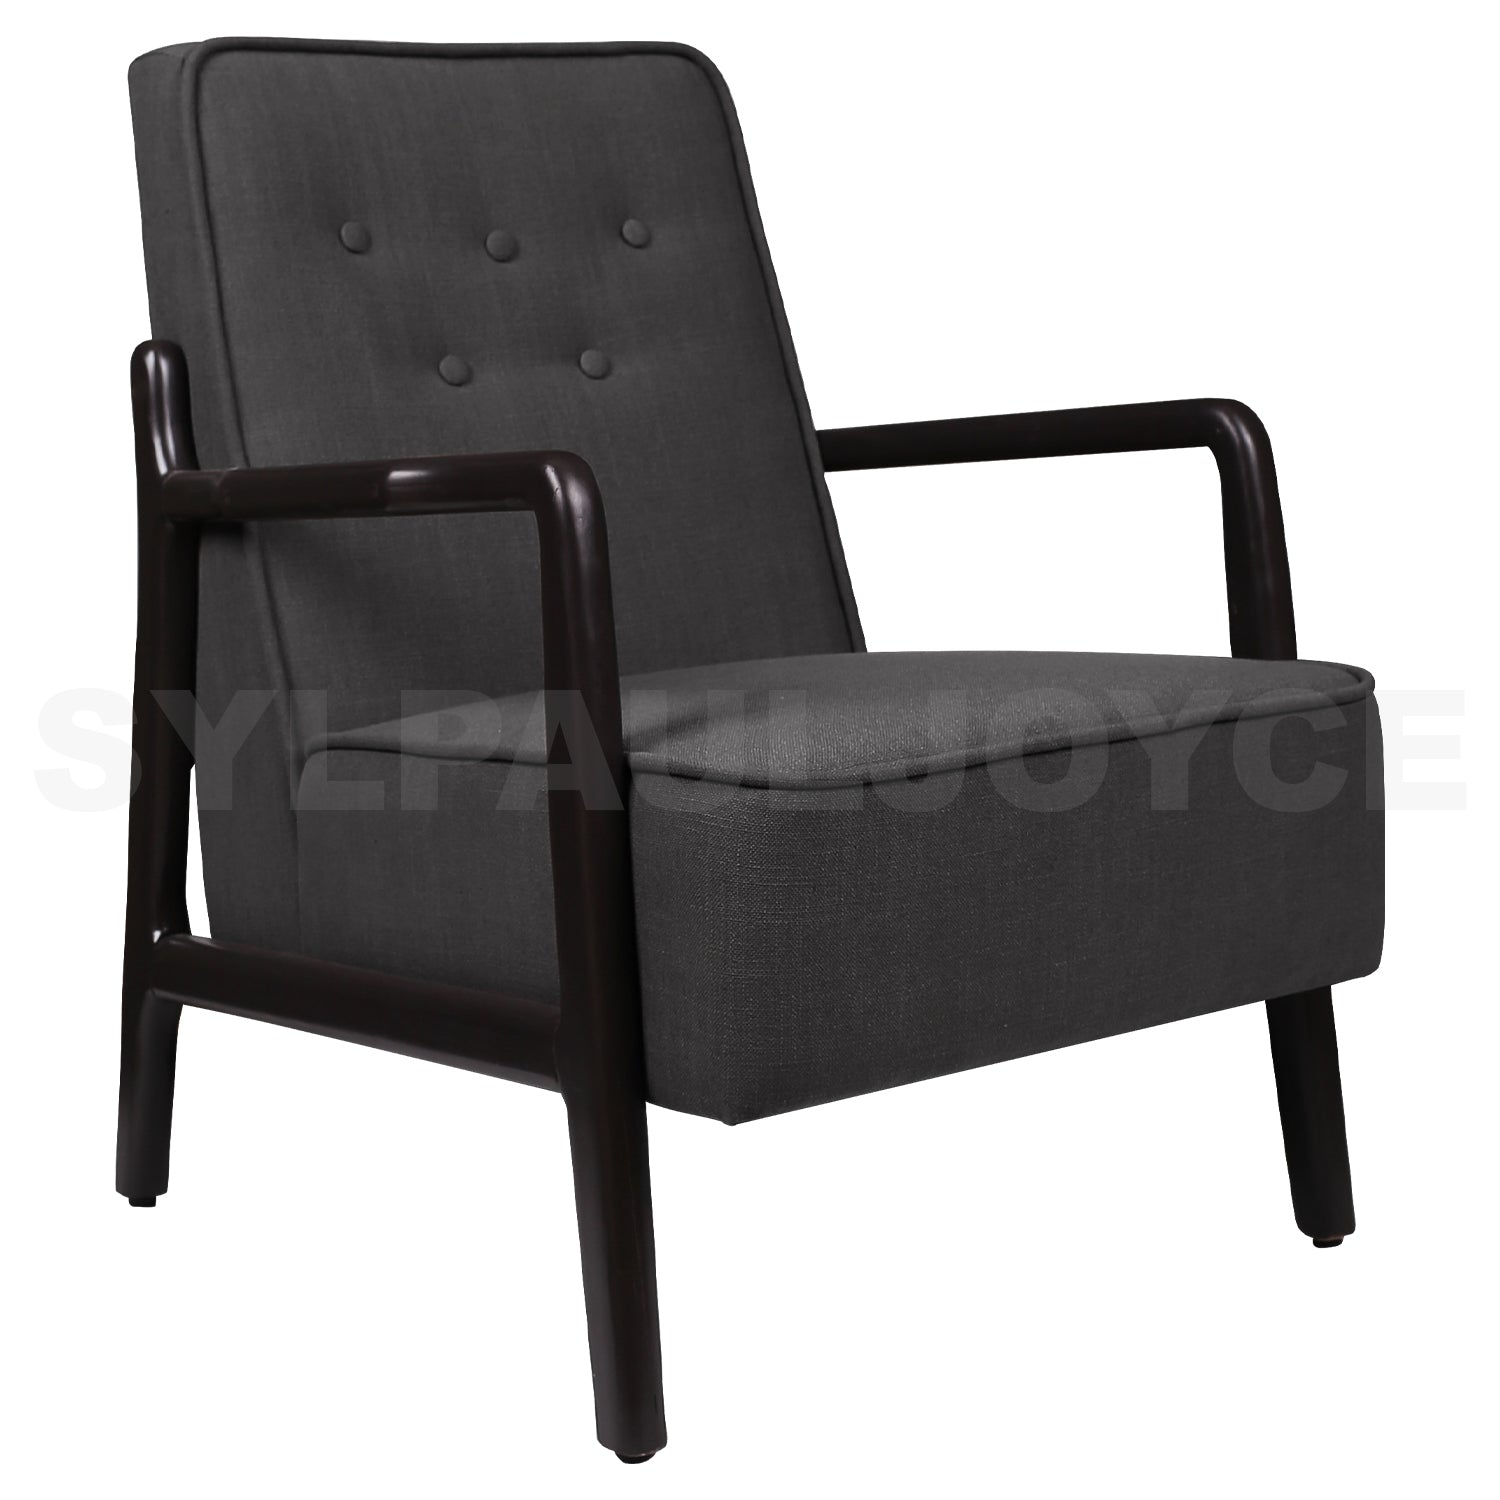 Alodia Accent Chair - Sylpauljoyce Furniture, Lights & Decor